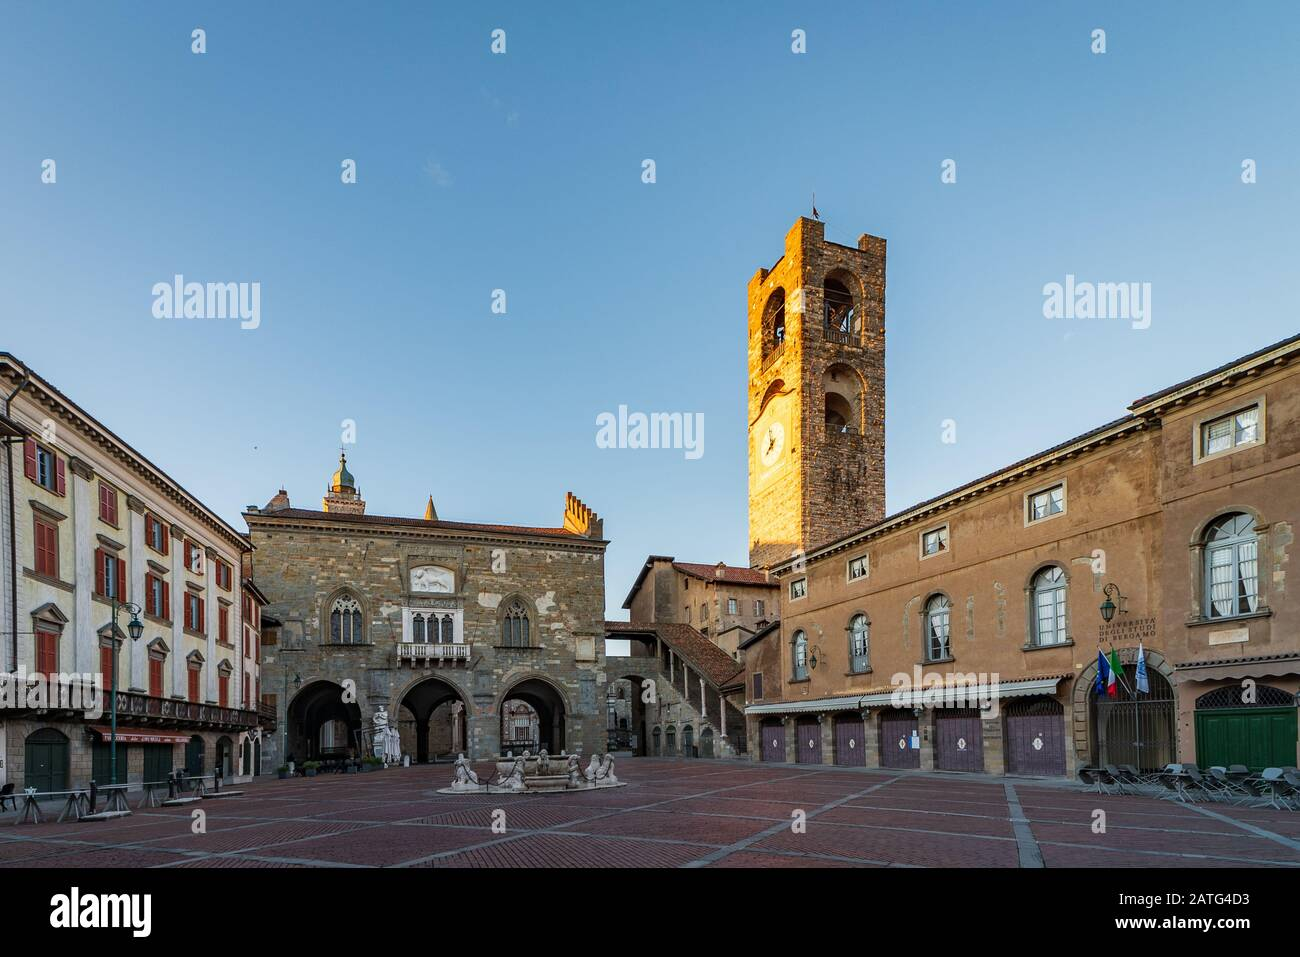 Panorama of Piazza Vecchia with the Contarini Fountain and in the background the Palazzo della Ragione and the bell tower called Campanone in Piazza V Stock Photo